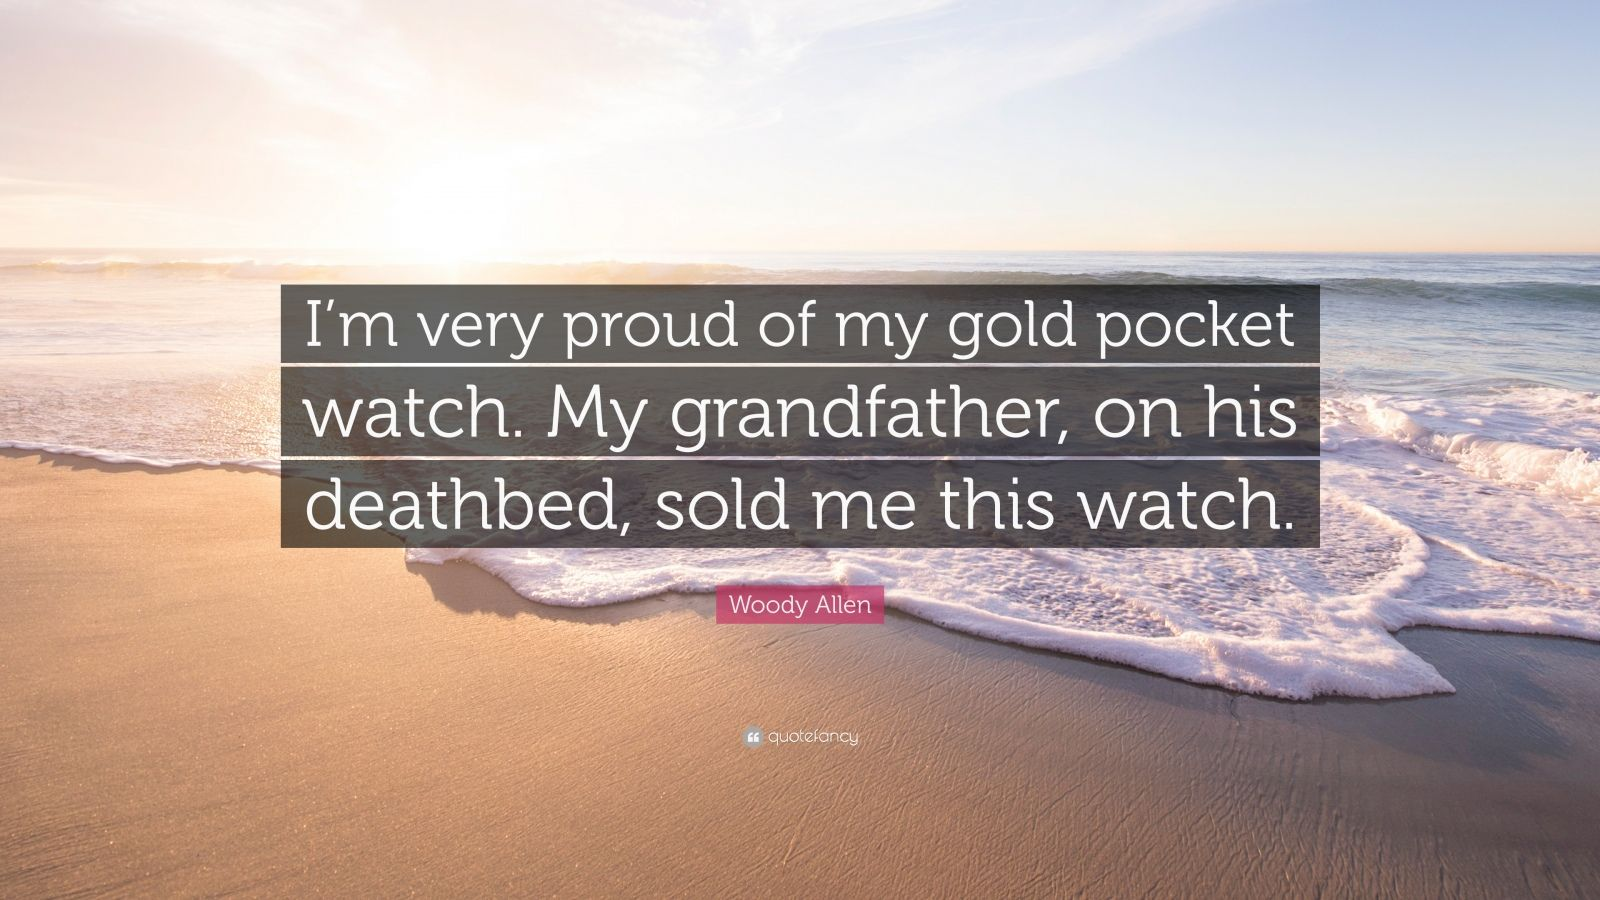 """Woody Allen Quote: """"I'm very proud of my gold pocket watch. My grandfather, on his deathbed, sold me this watch."""""""